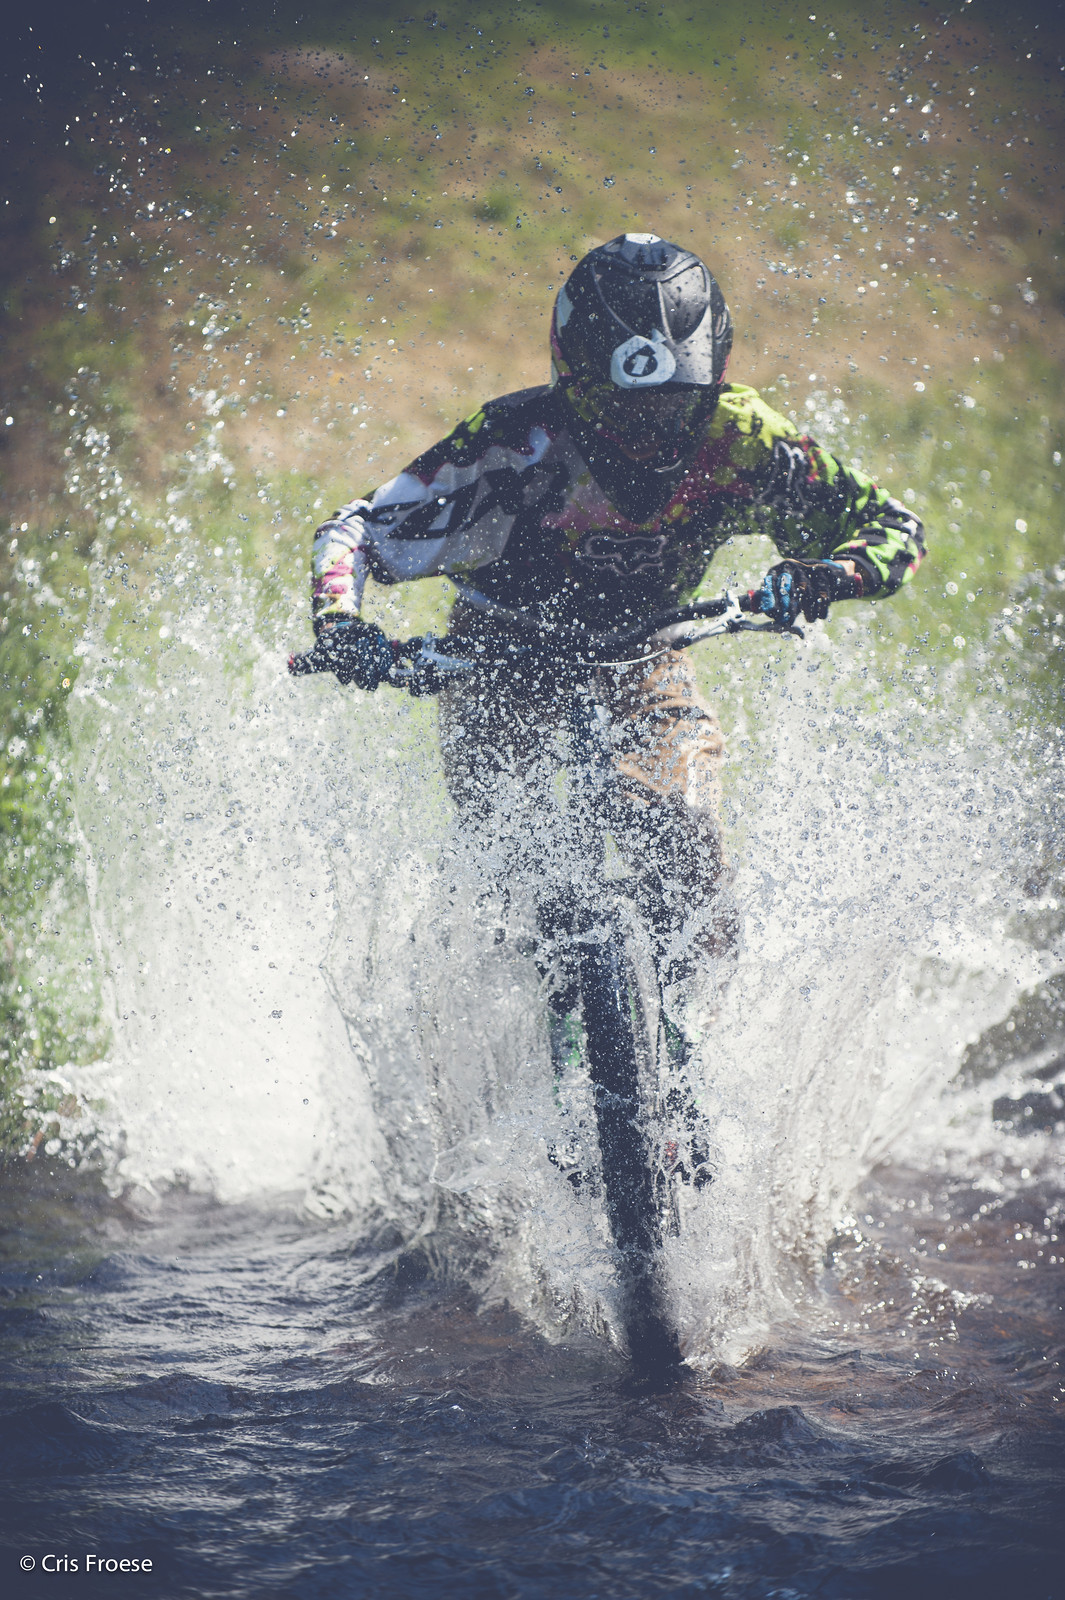 qra splash - MouflonsRiders - Mountain Biking Pictures - Vital MTB